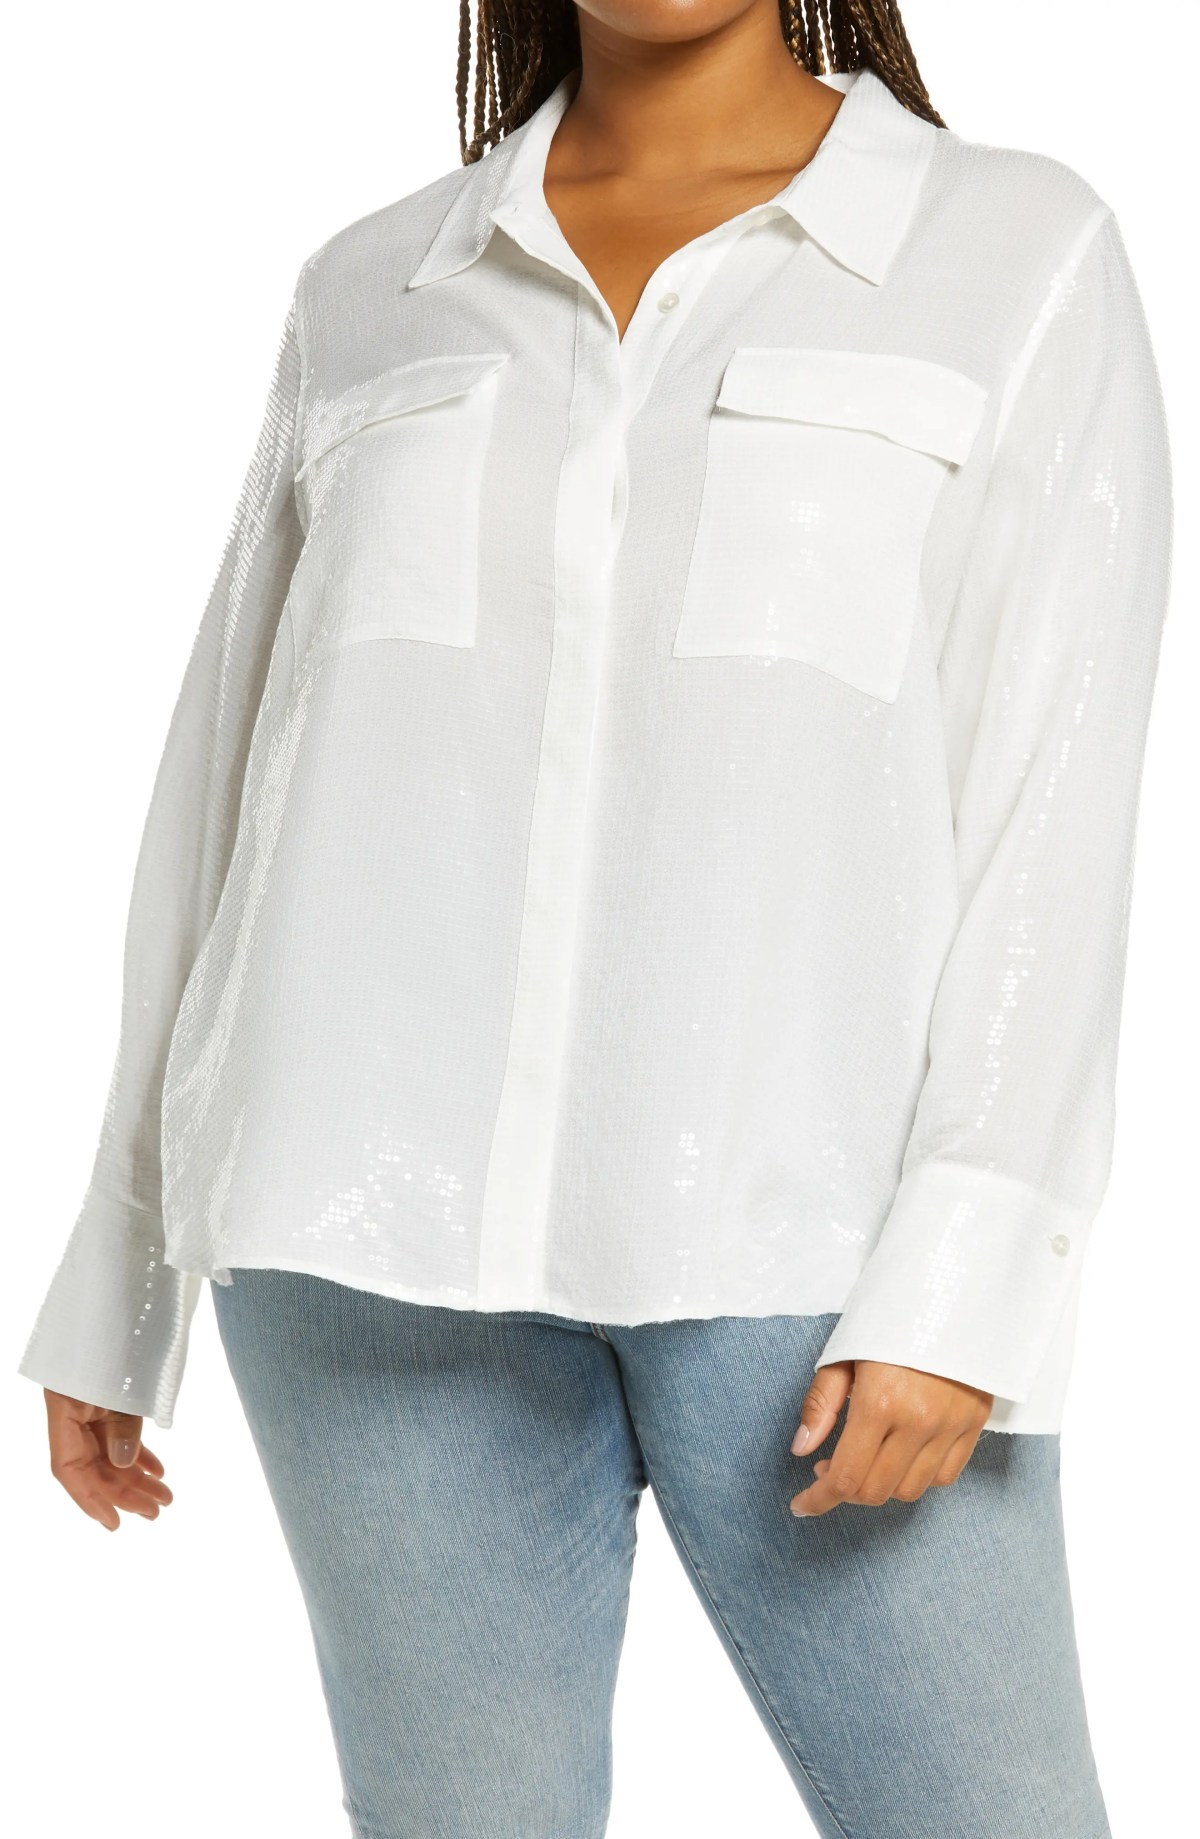 GOOD AMERICAN Sequin Sheet Button-Up Shirt, Main, color, IVORY001